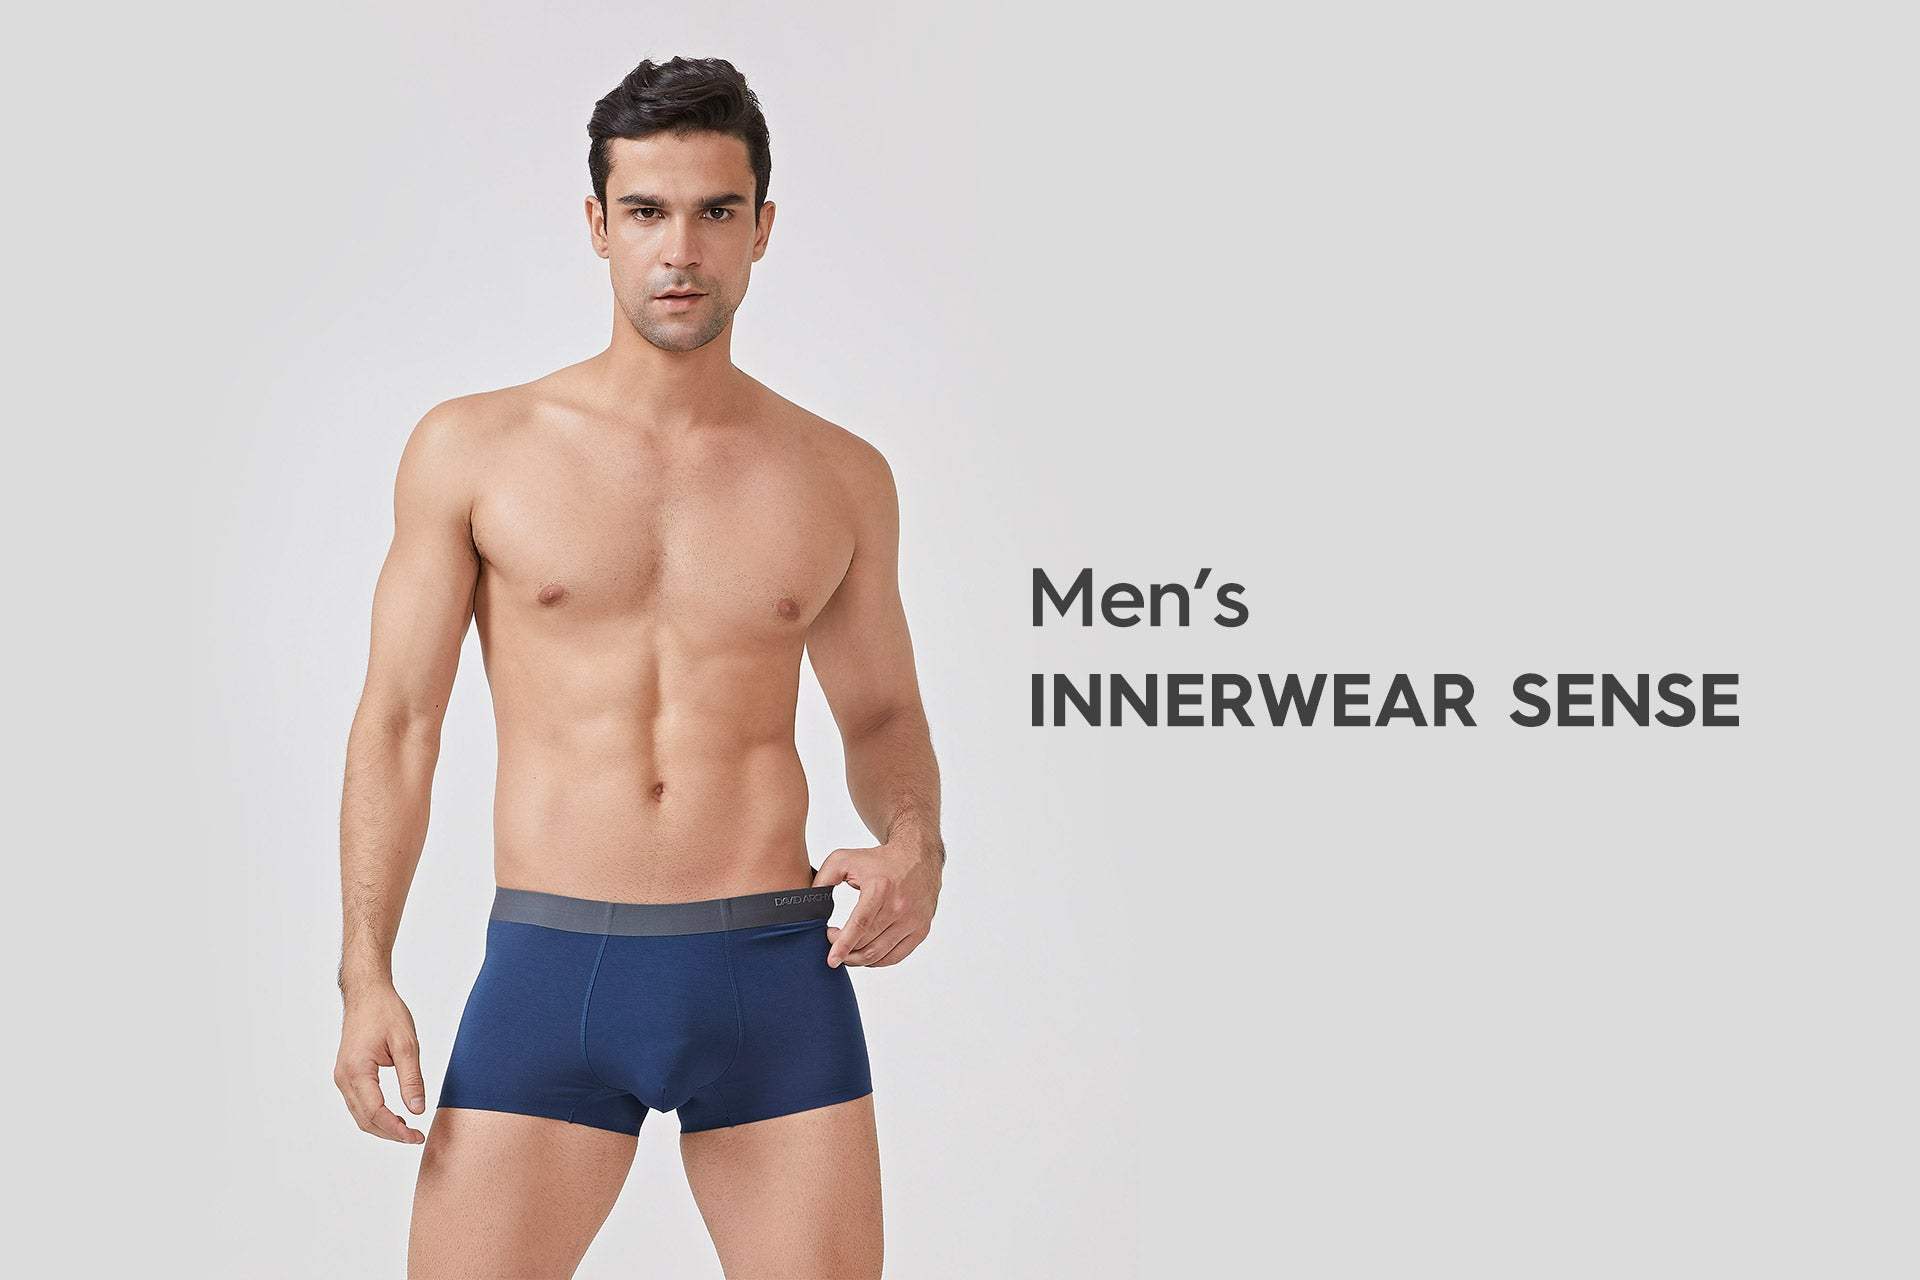 How to improve the men' s inner wear sense